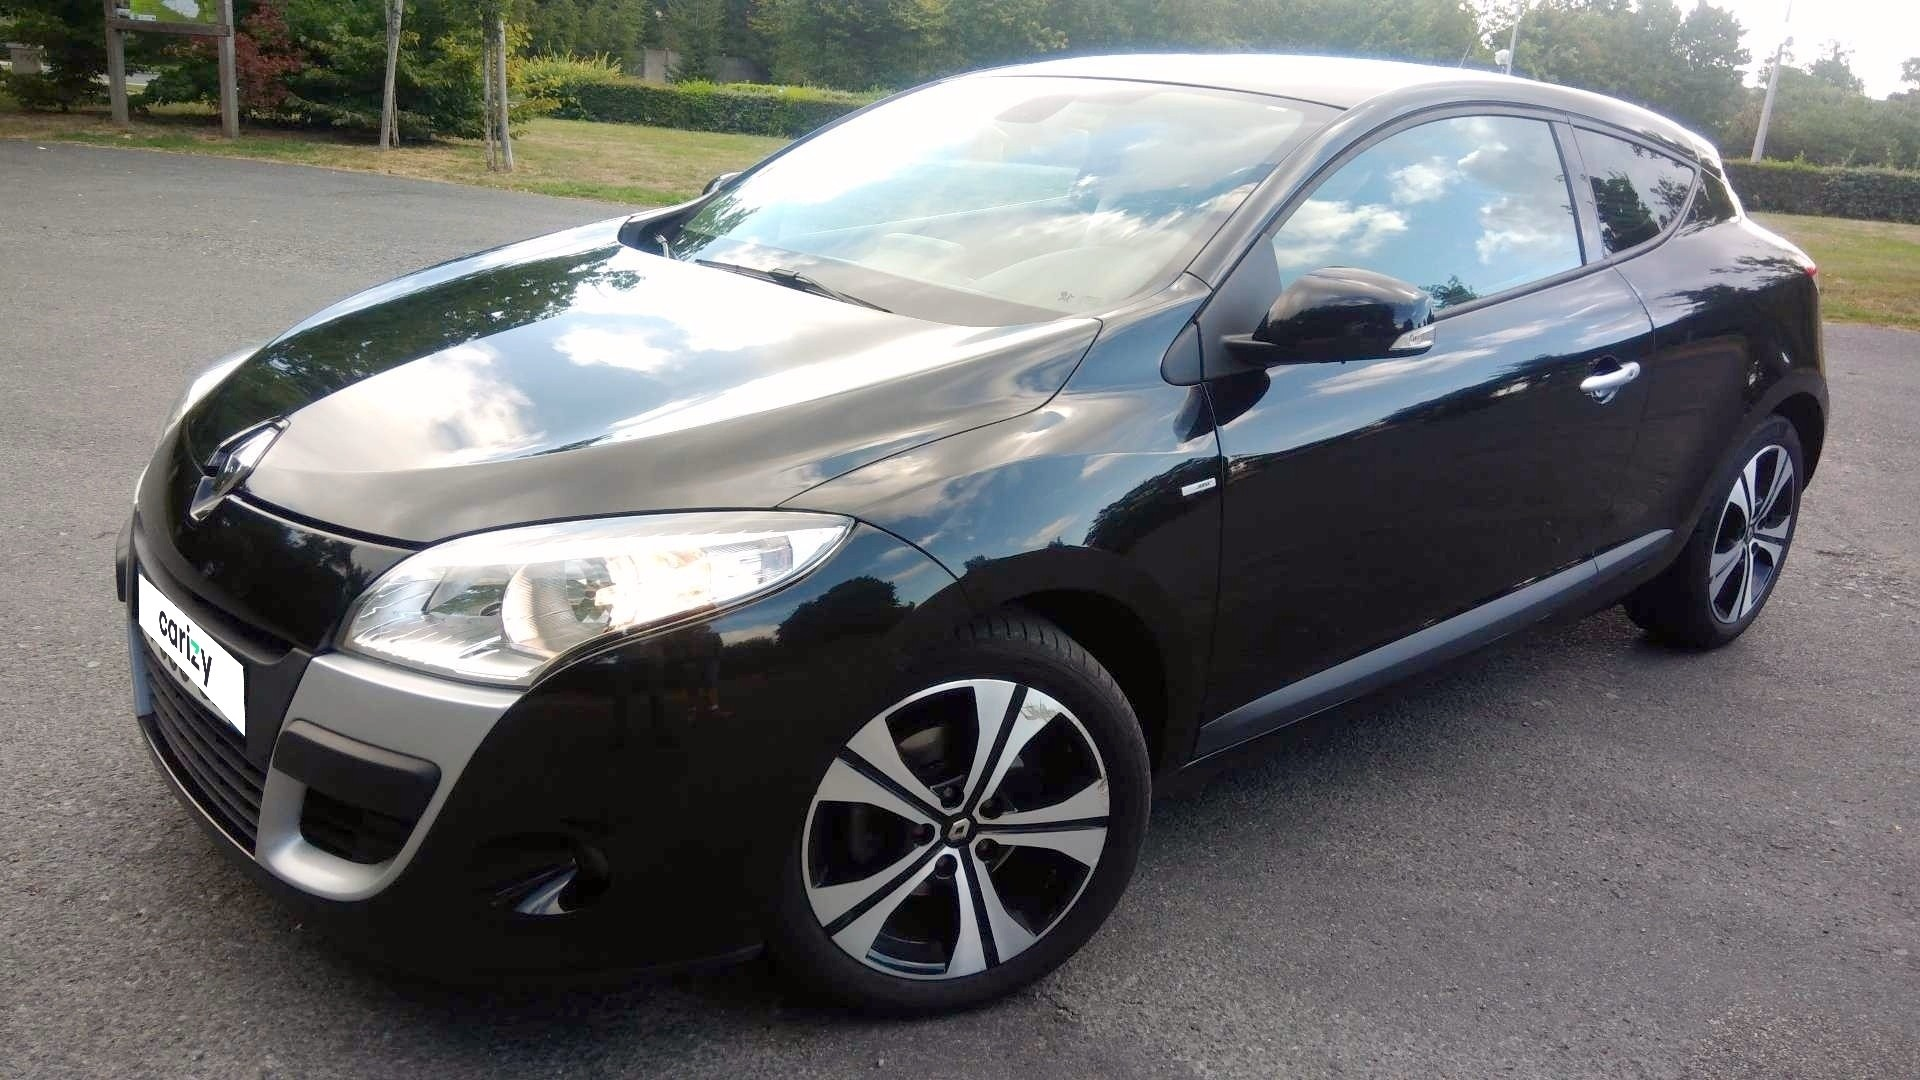 Renault Megane Iii Coupe D Occasion Megane Iii Coupe Tce 130 Bose Euro 5 Saint Macaire En Mauges Carizy